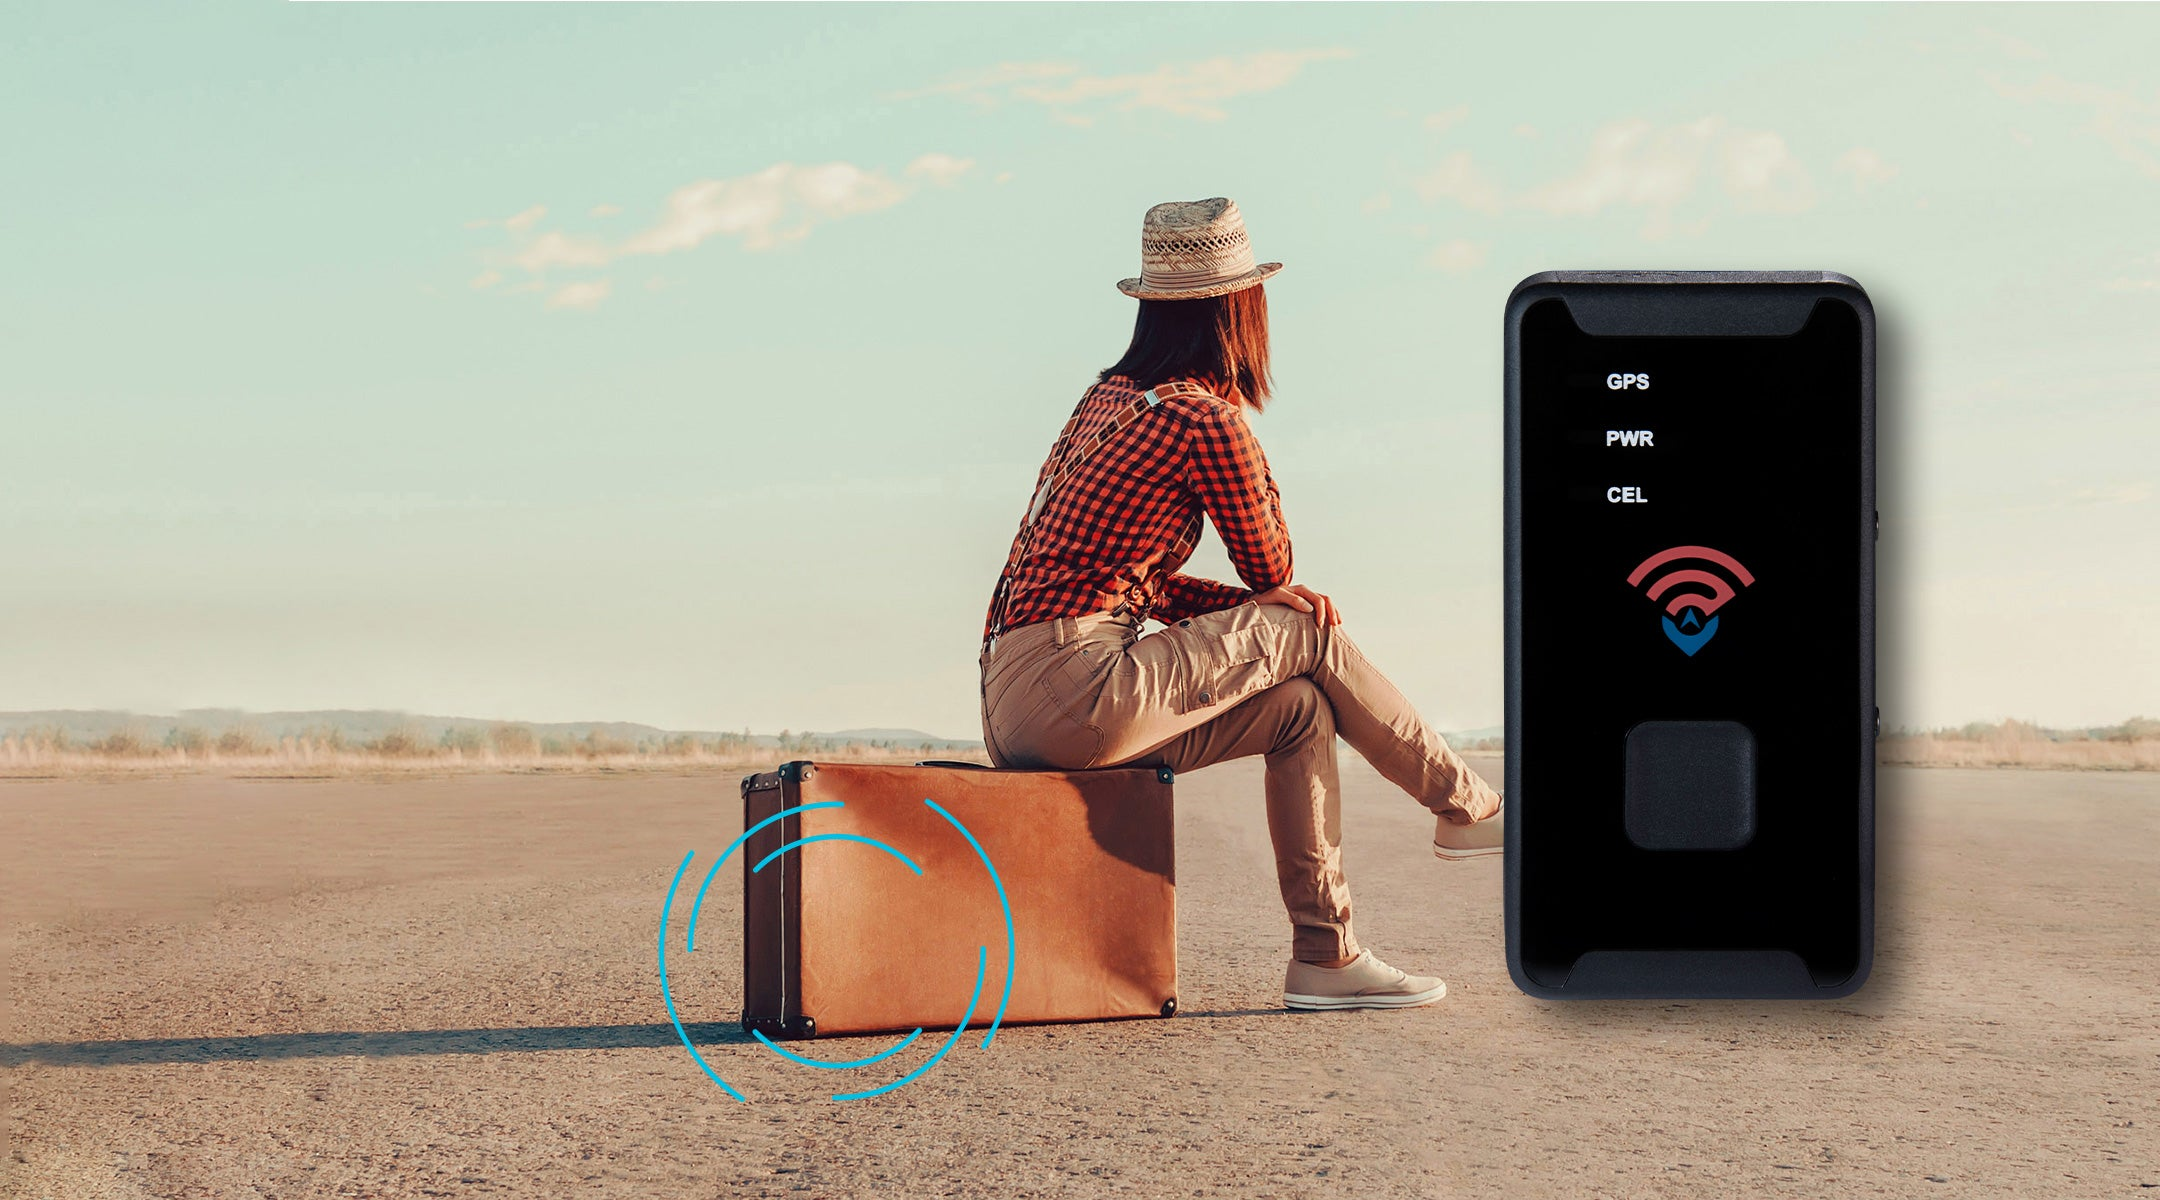 Discreetly track and map people, valuables, and vehicles in real-time with the GL300 Real Time GPS Tracker